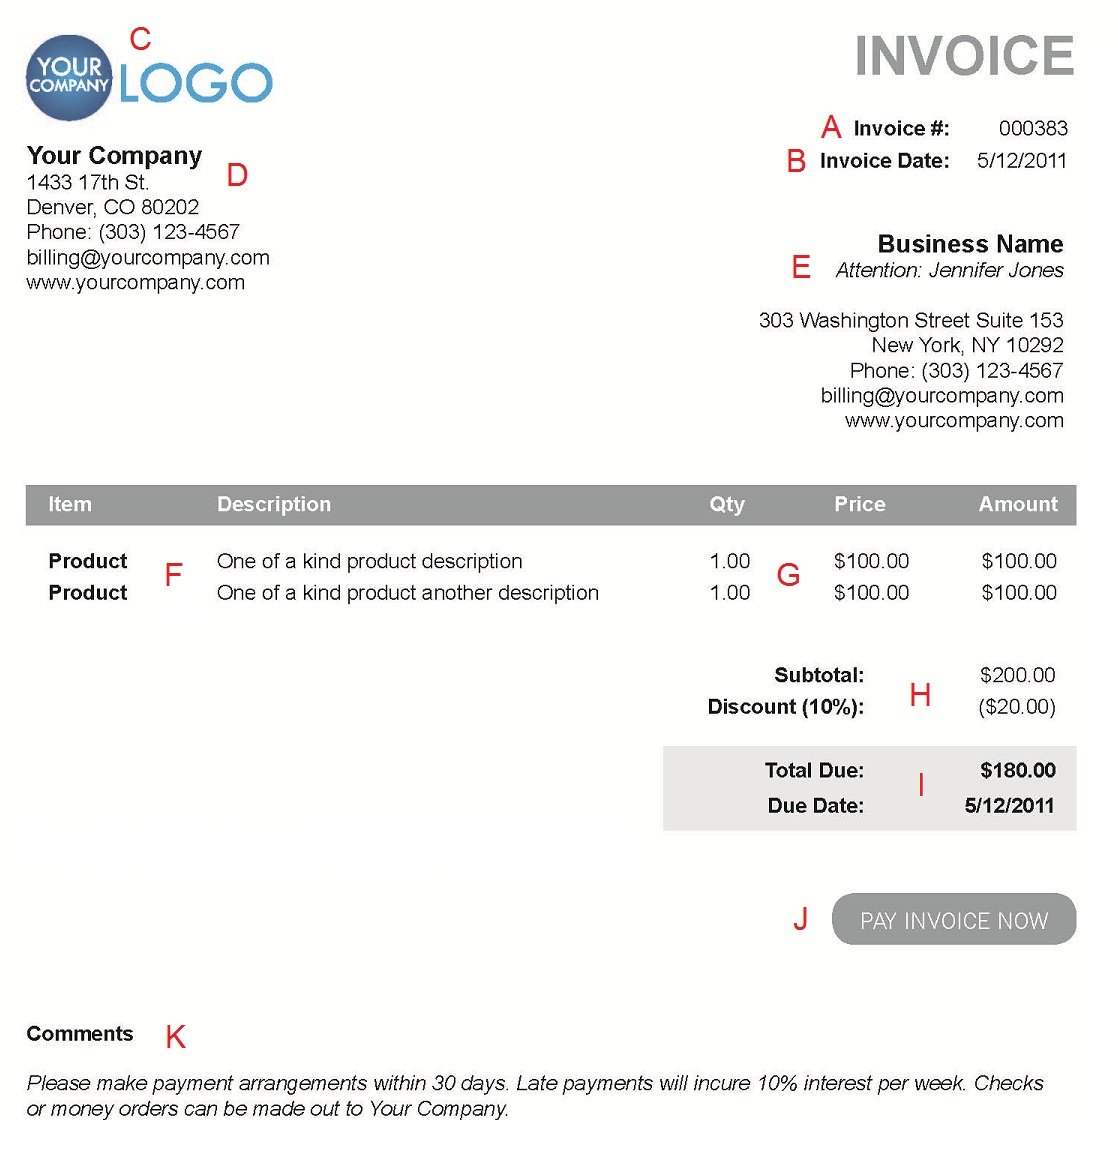 Angkajituus  Sweet The  Different Sections Of An Electronic Payment Invoice With Licious A  With Attractive Free Open Office Invoice Template Also How To Do A Paypal Invoice In Addition How To Email Multiple Invoices In Quickbooks And Salary Invoice As Well As Truck Invoice Prices Additionally Prepayment Invoice From Paysimplecom With Angkajituus  Licious The  Different Sections Of An Electronic Payment Invoice With Attractive A  And Sweet Free Open Office Invoice Template Also How To Do A Paypal Invoice In Addition How To Email Multiple Invoices In Quickbooks From Paysimplecom